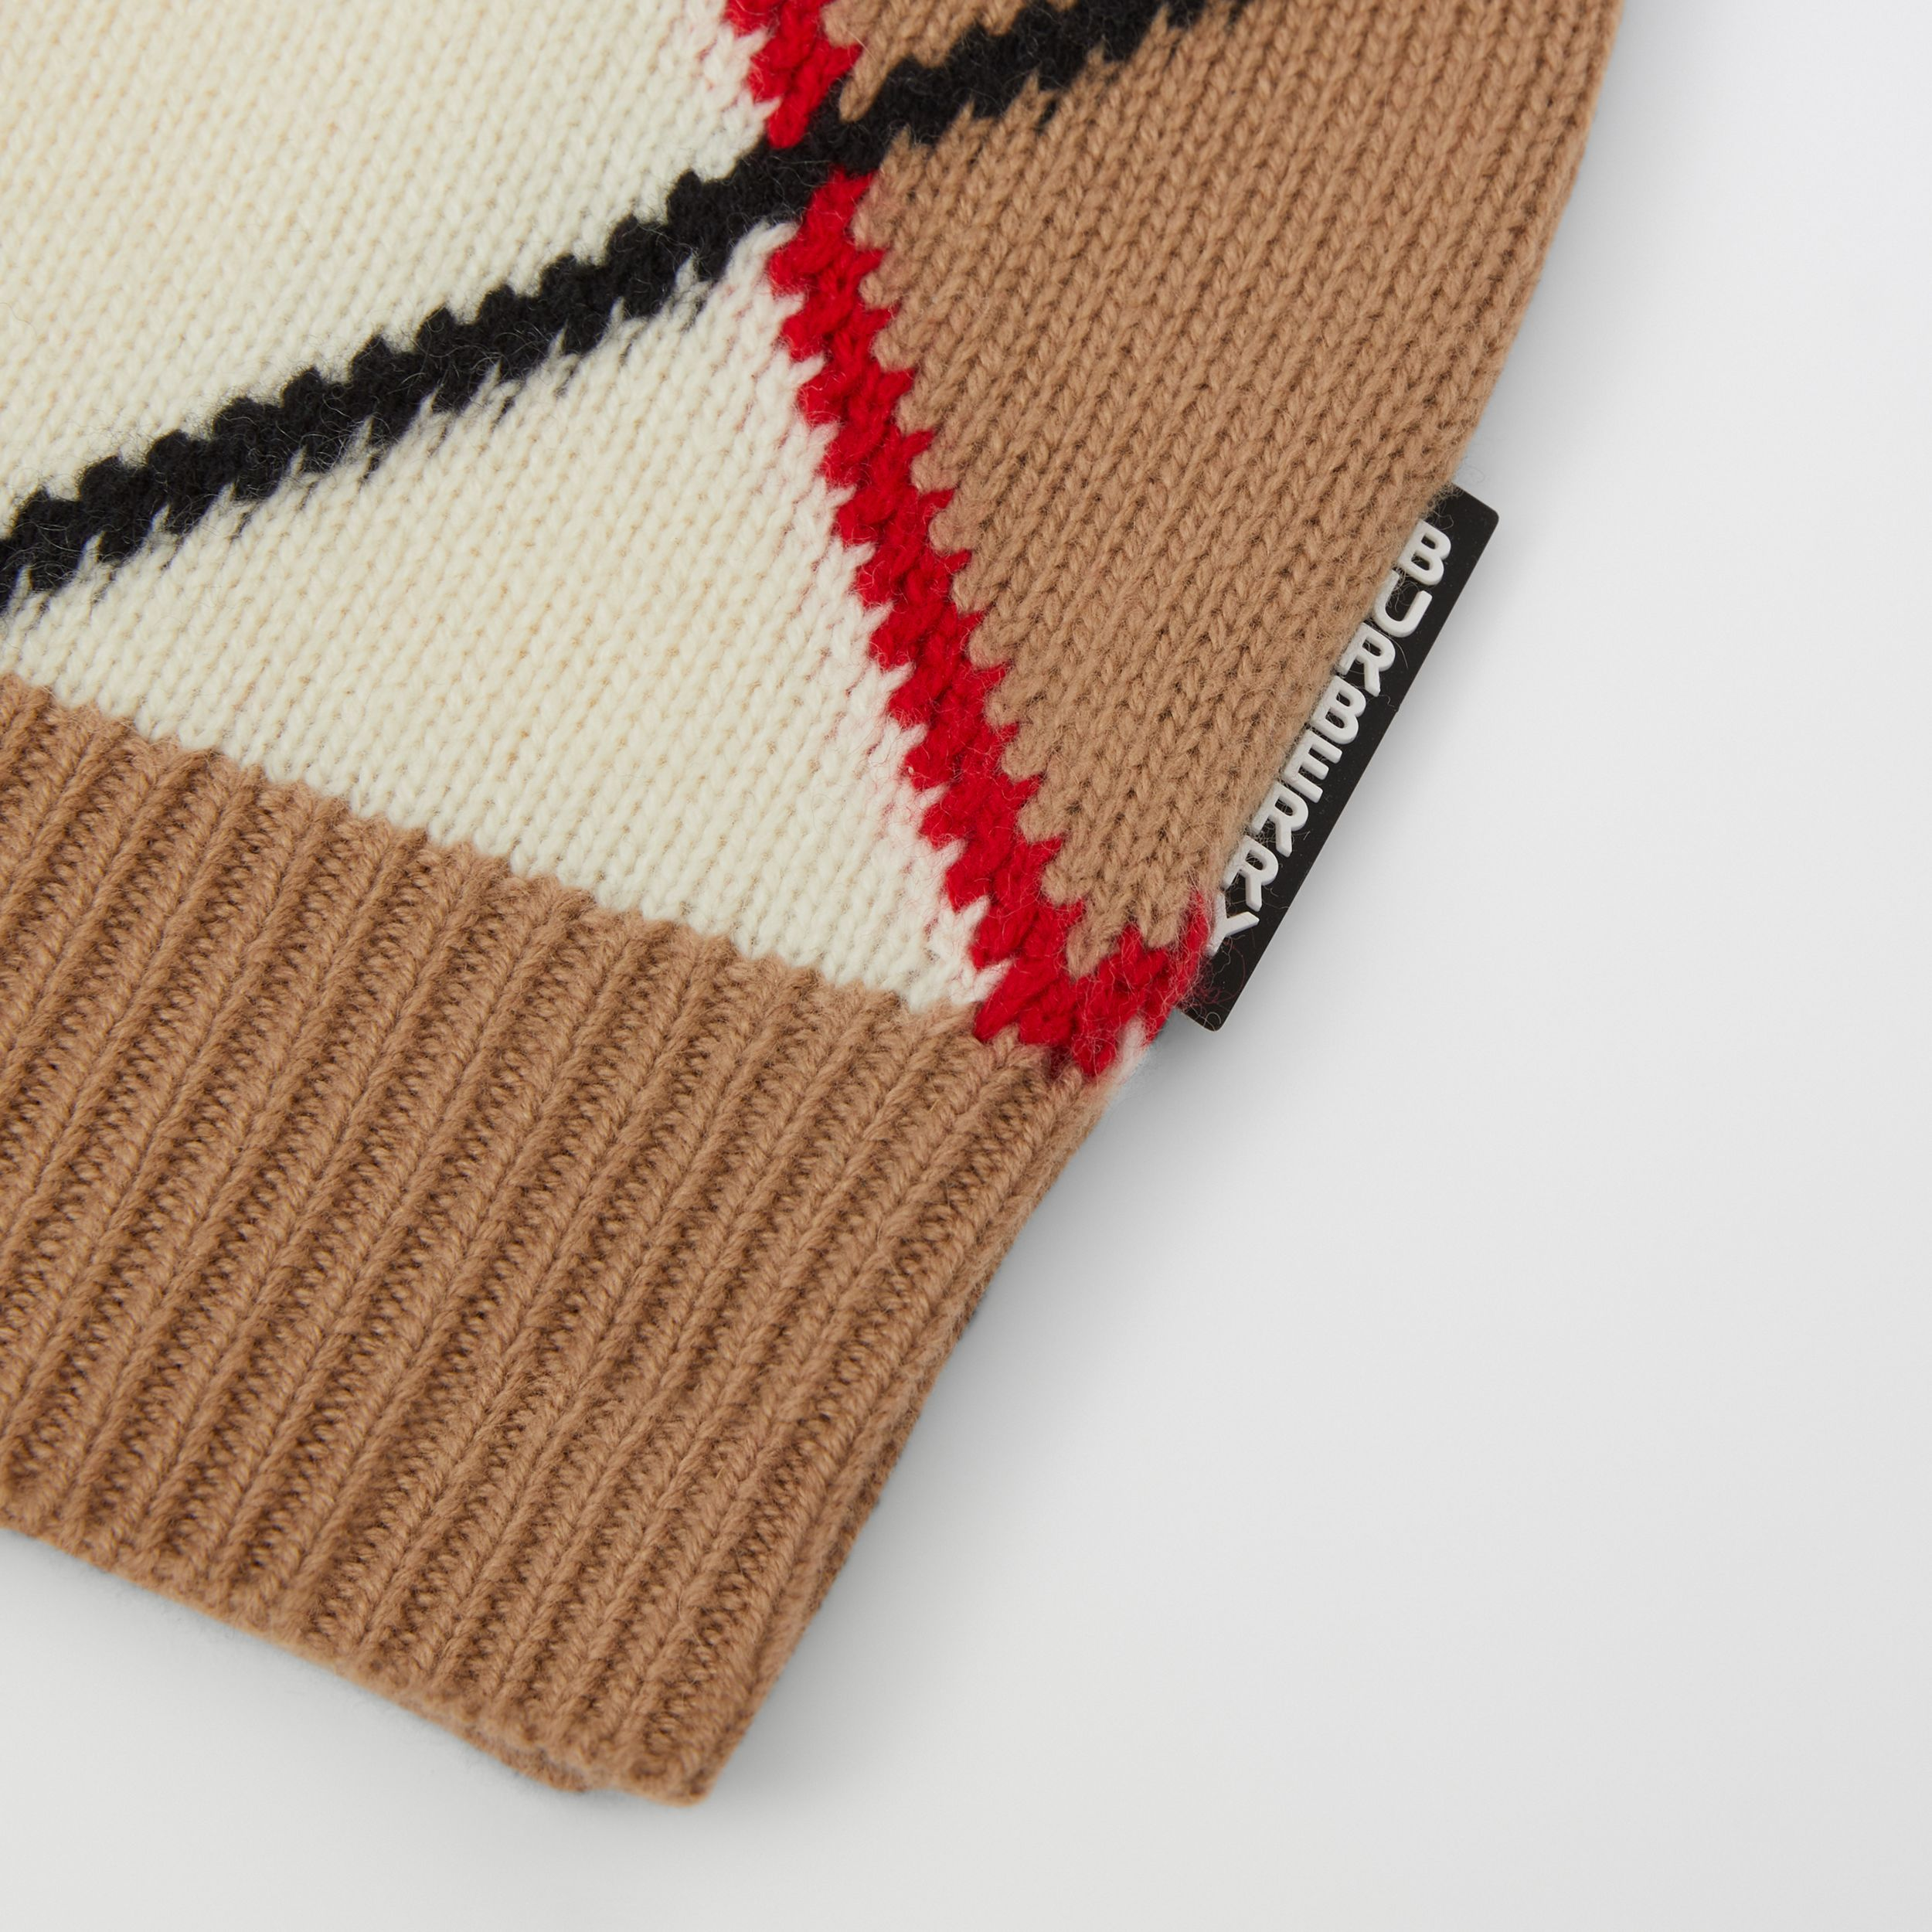 Argyle Intarsia Wool Cashmere Cardigan in Camel | Burberry - 2